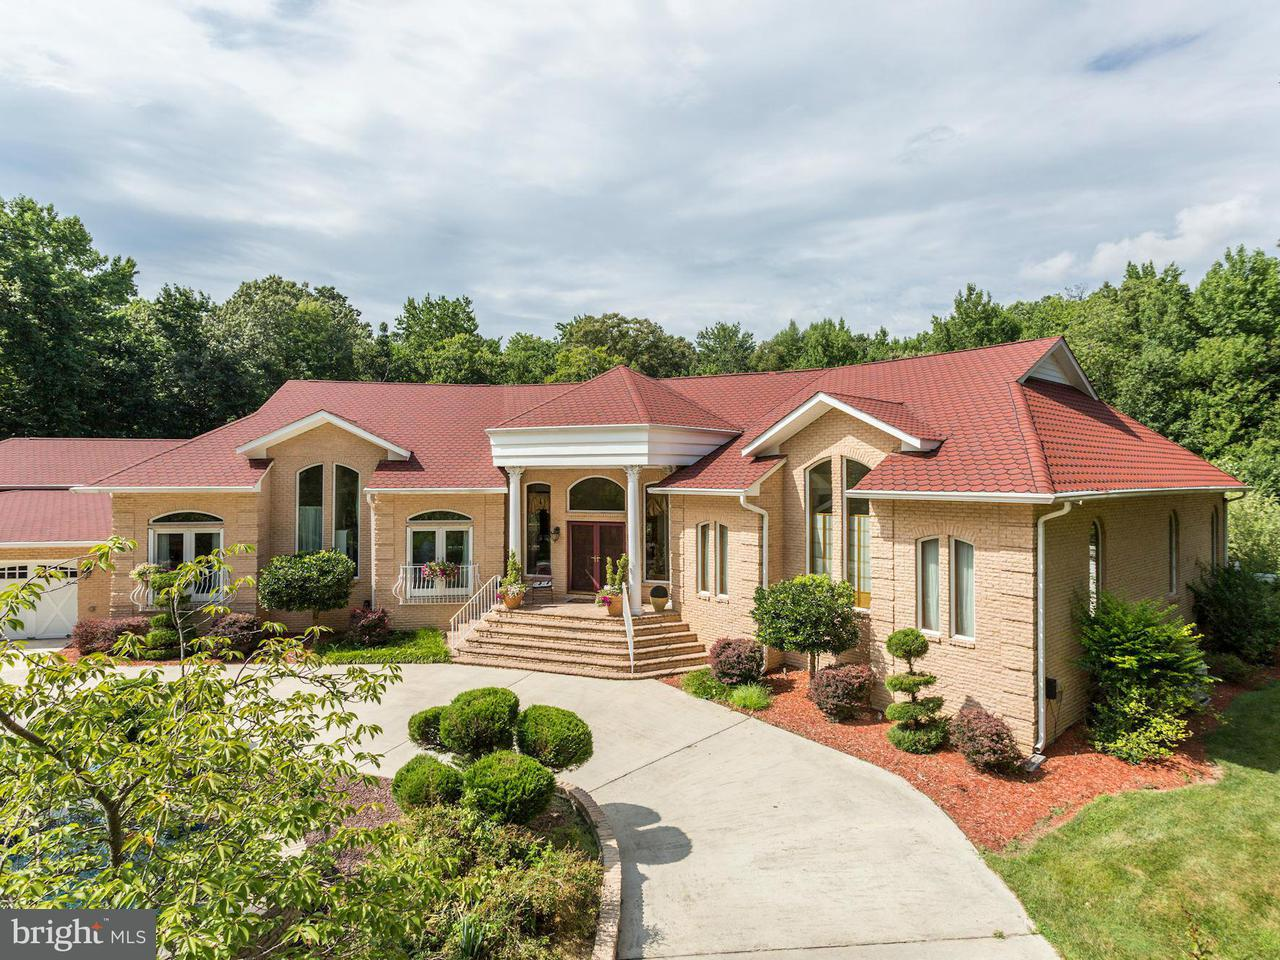 Single Family Home for Sale at 322 PINE Road 322 PINE Road Fort Washington, Maryland 20744 United States